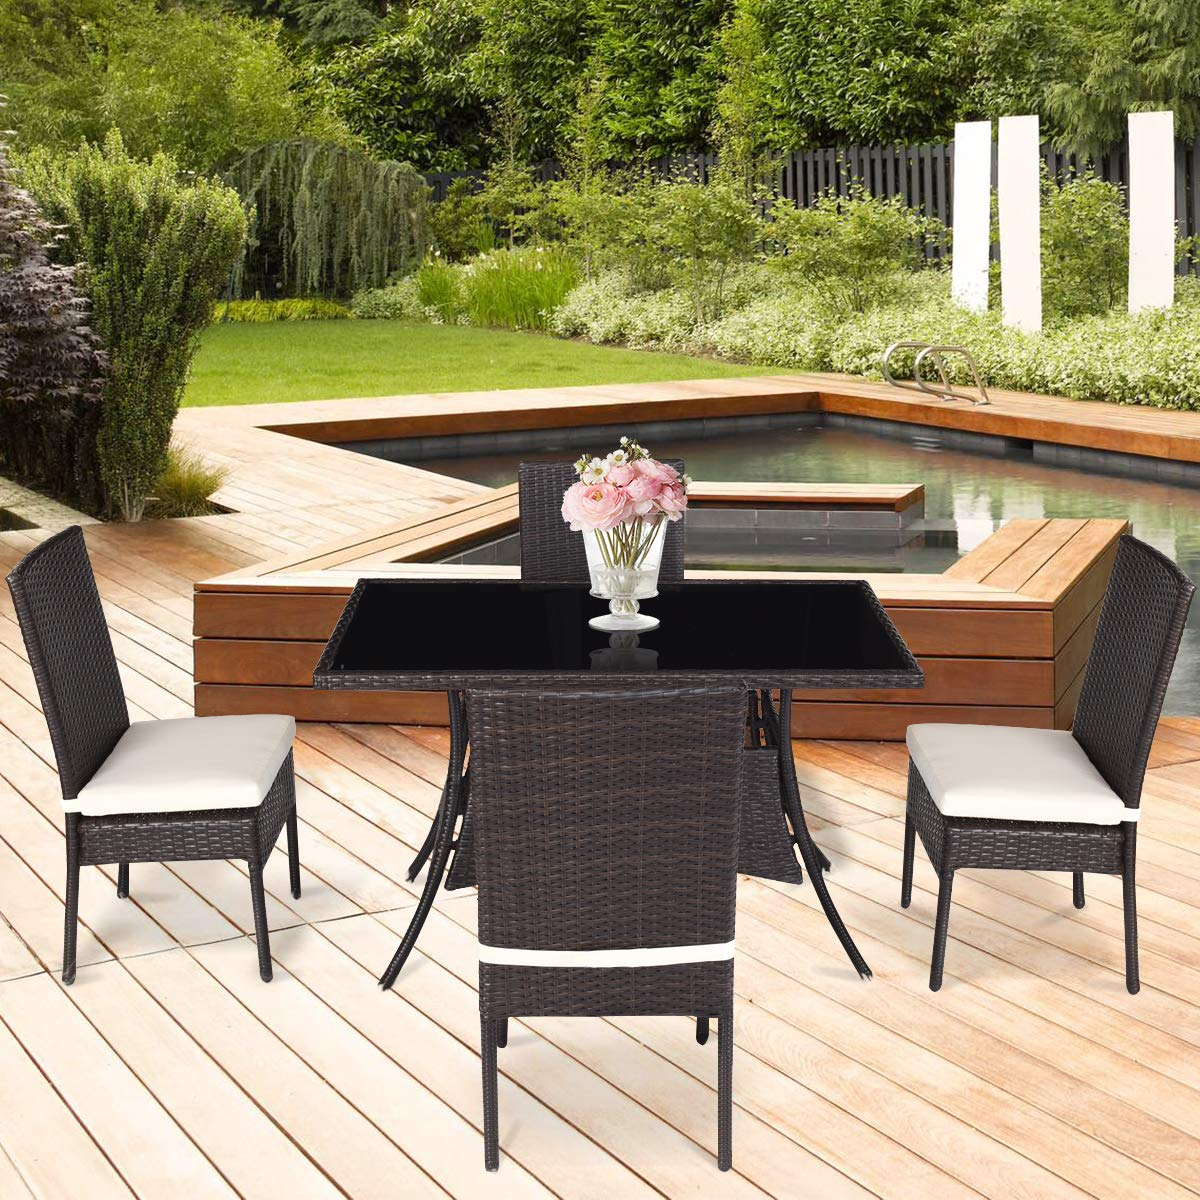 Tangkula Patio Furniture, 5 PCS All Weather Resistant Heavy Duty Wicker Dining Set with Chairs, Perfect for Balcony Patio Garden Poolside, 5 Piece Wicker Table and Chairs Set by Tangkula (Image #4)